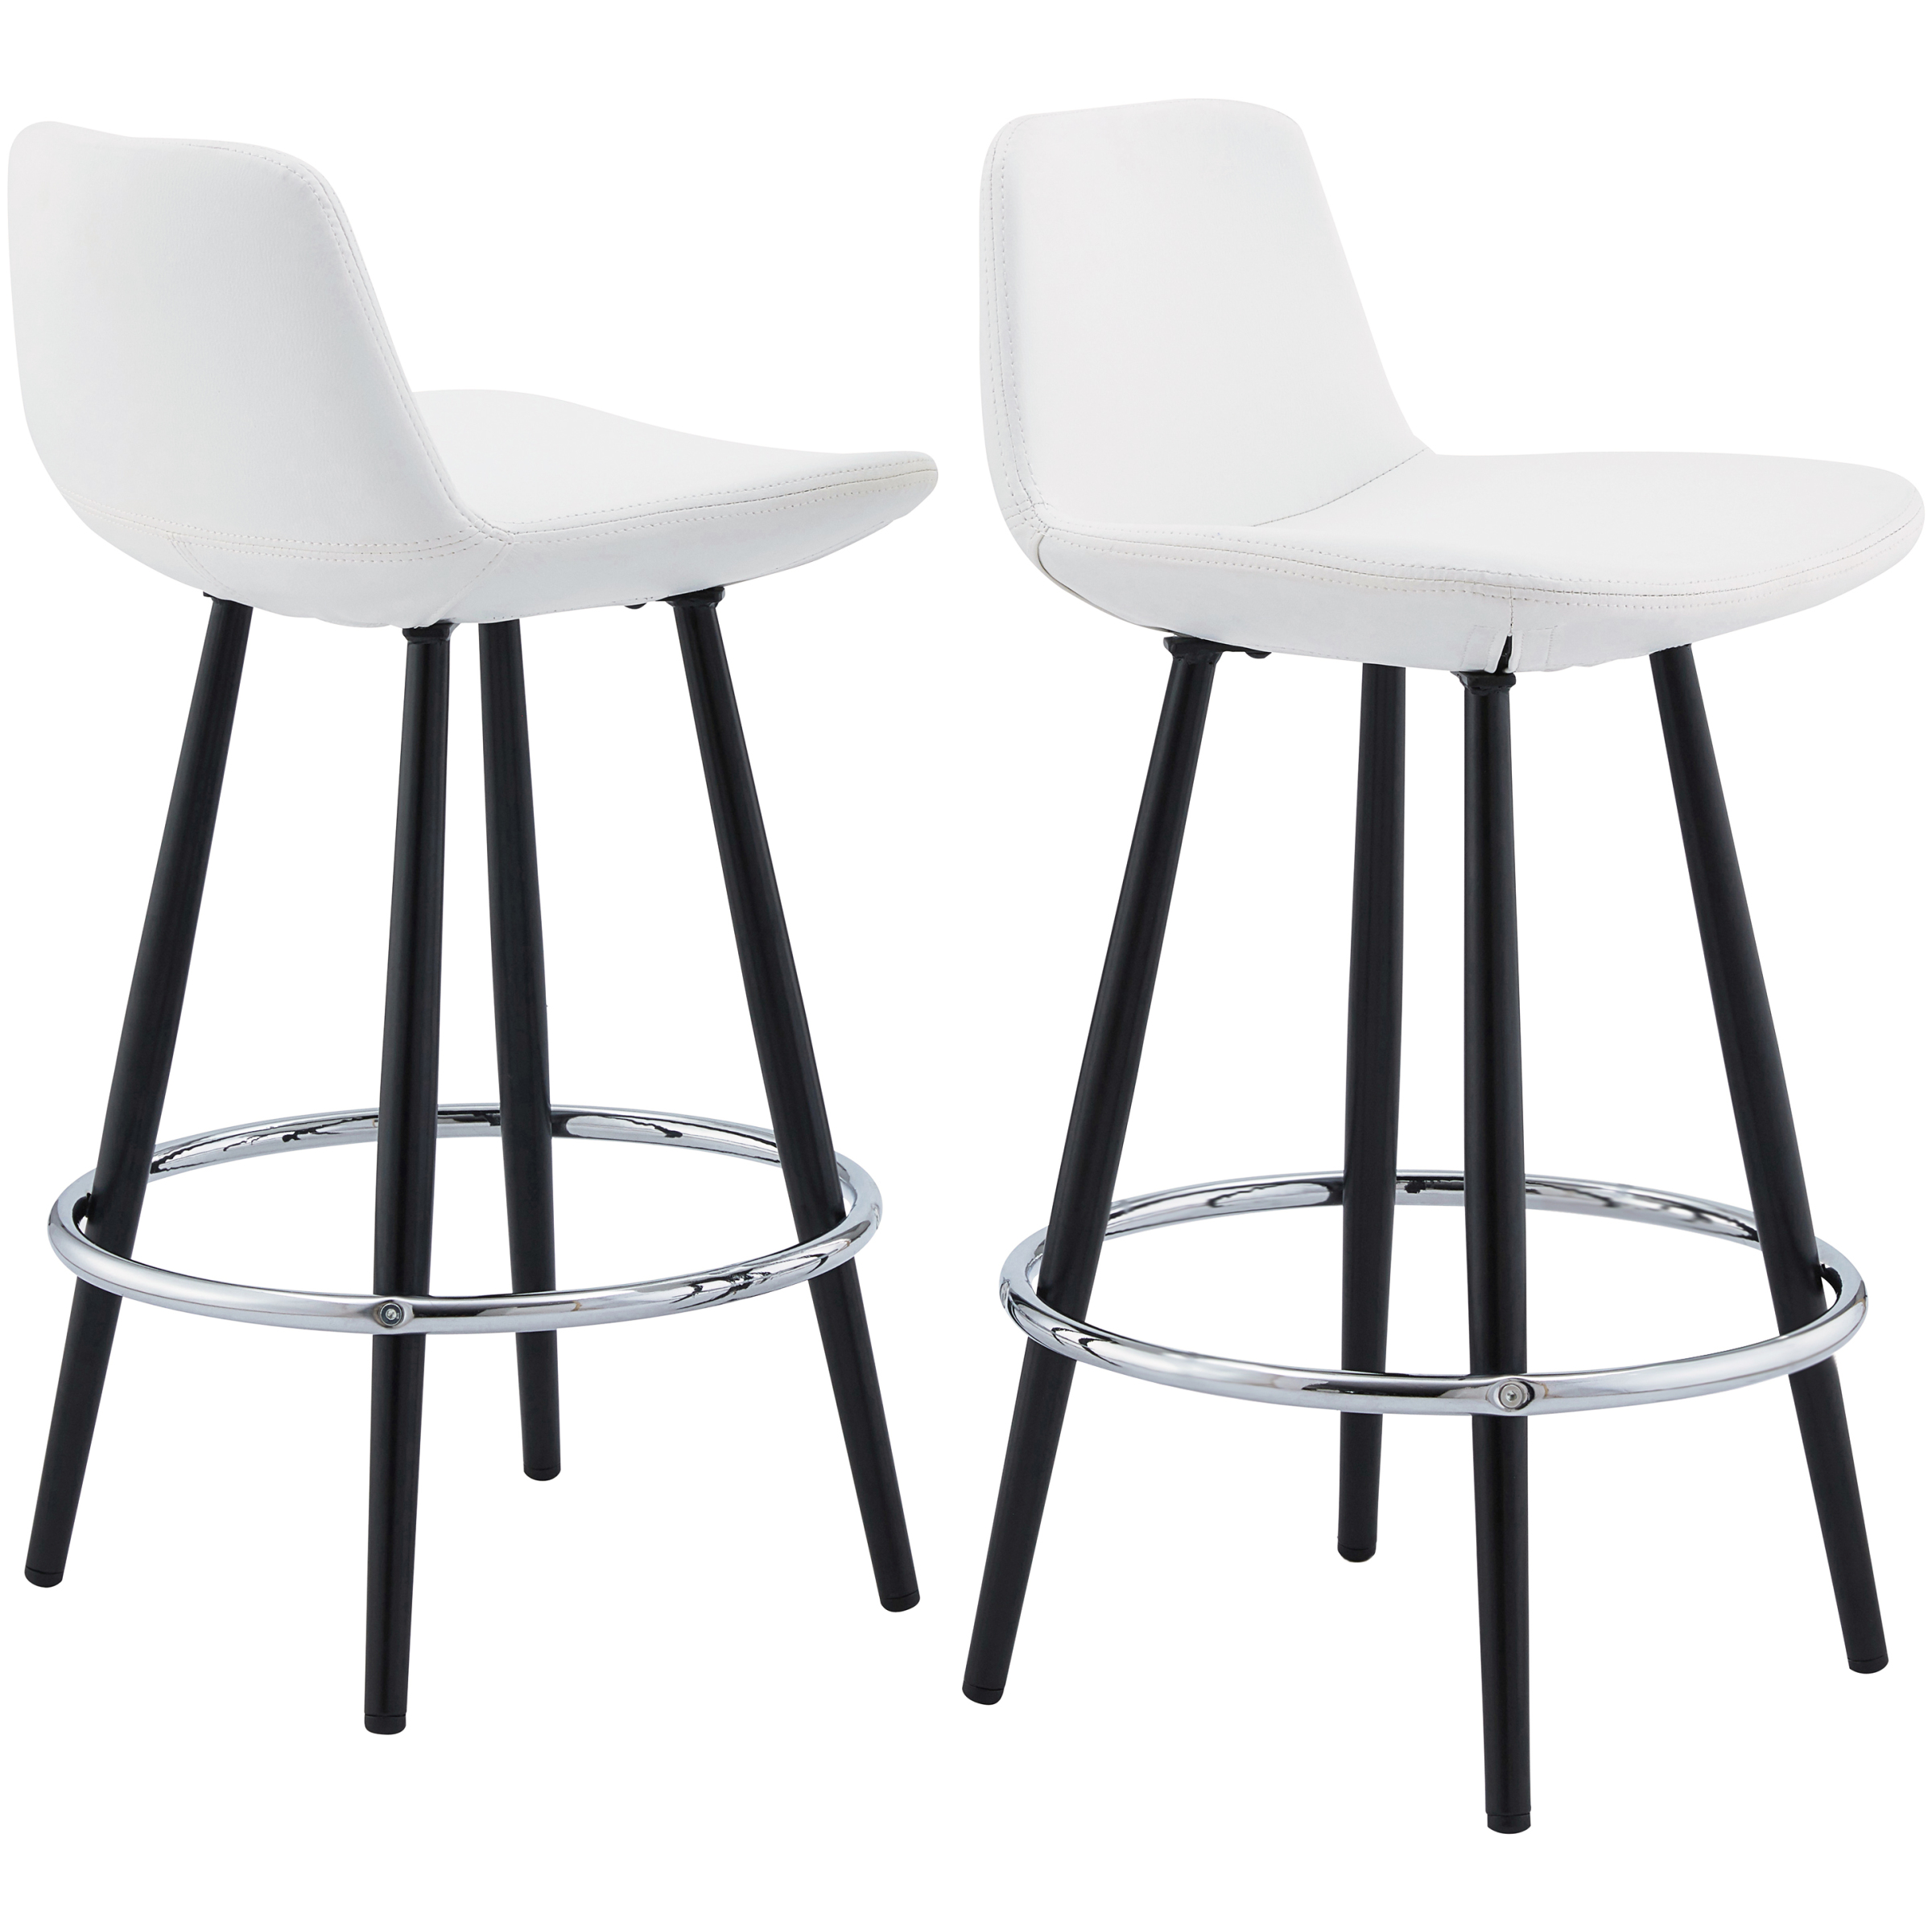 Upholstered Bucket Seat Counter Stool Chair Kitchen Dining Set Of 2